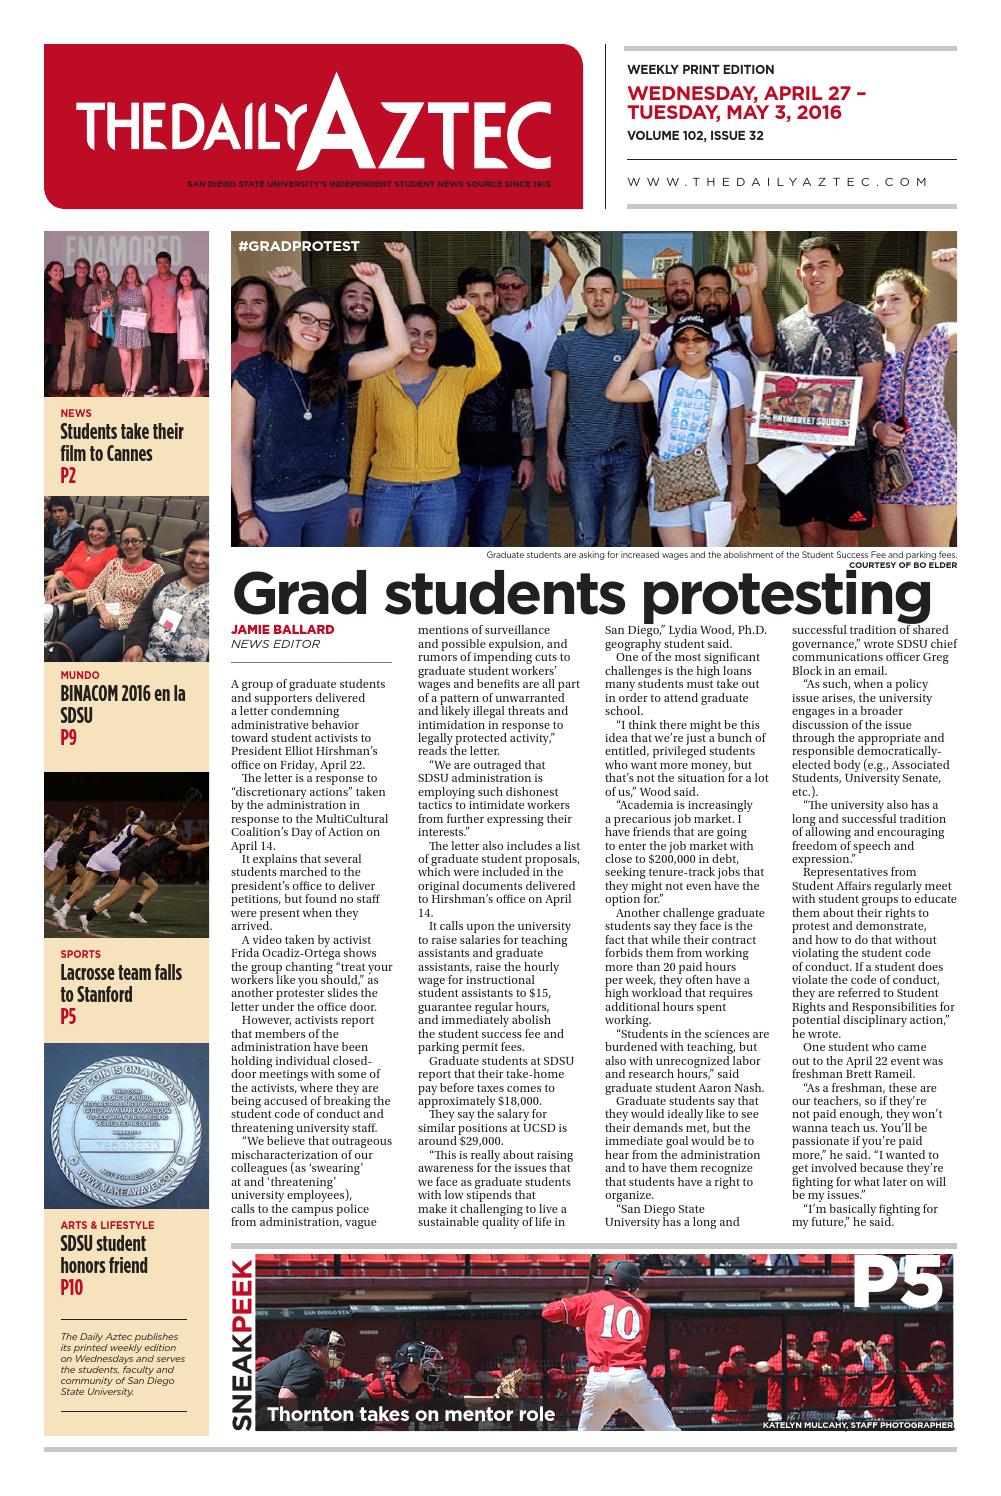 04-27-2016 by The Daily Aztec - issuu